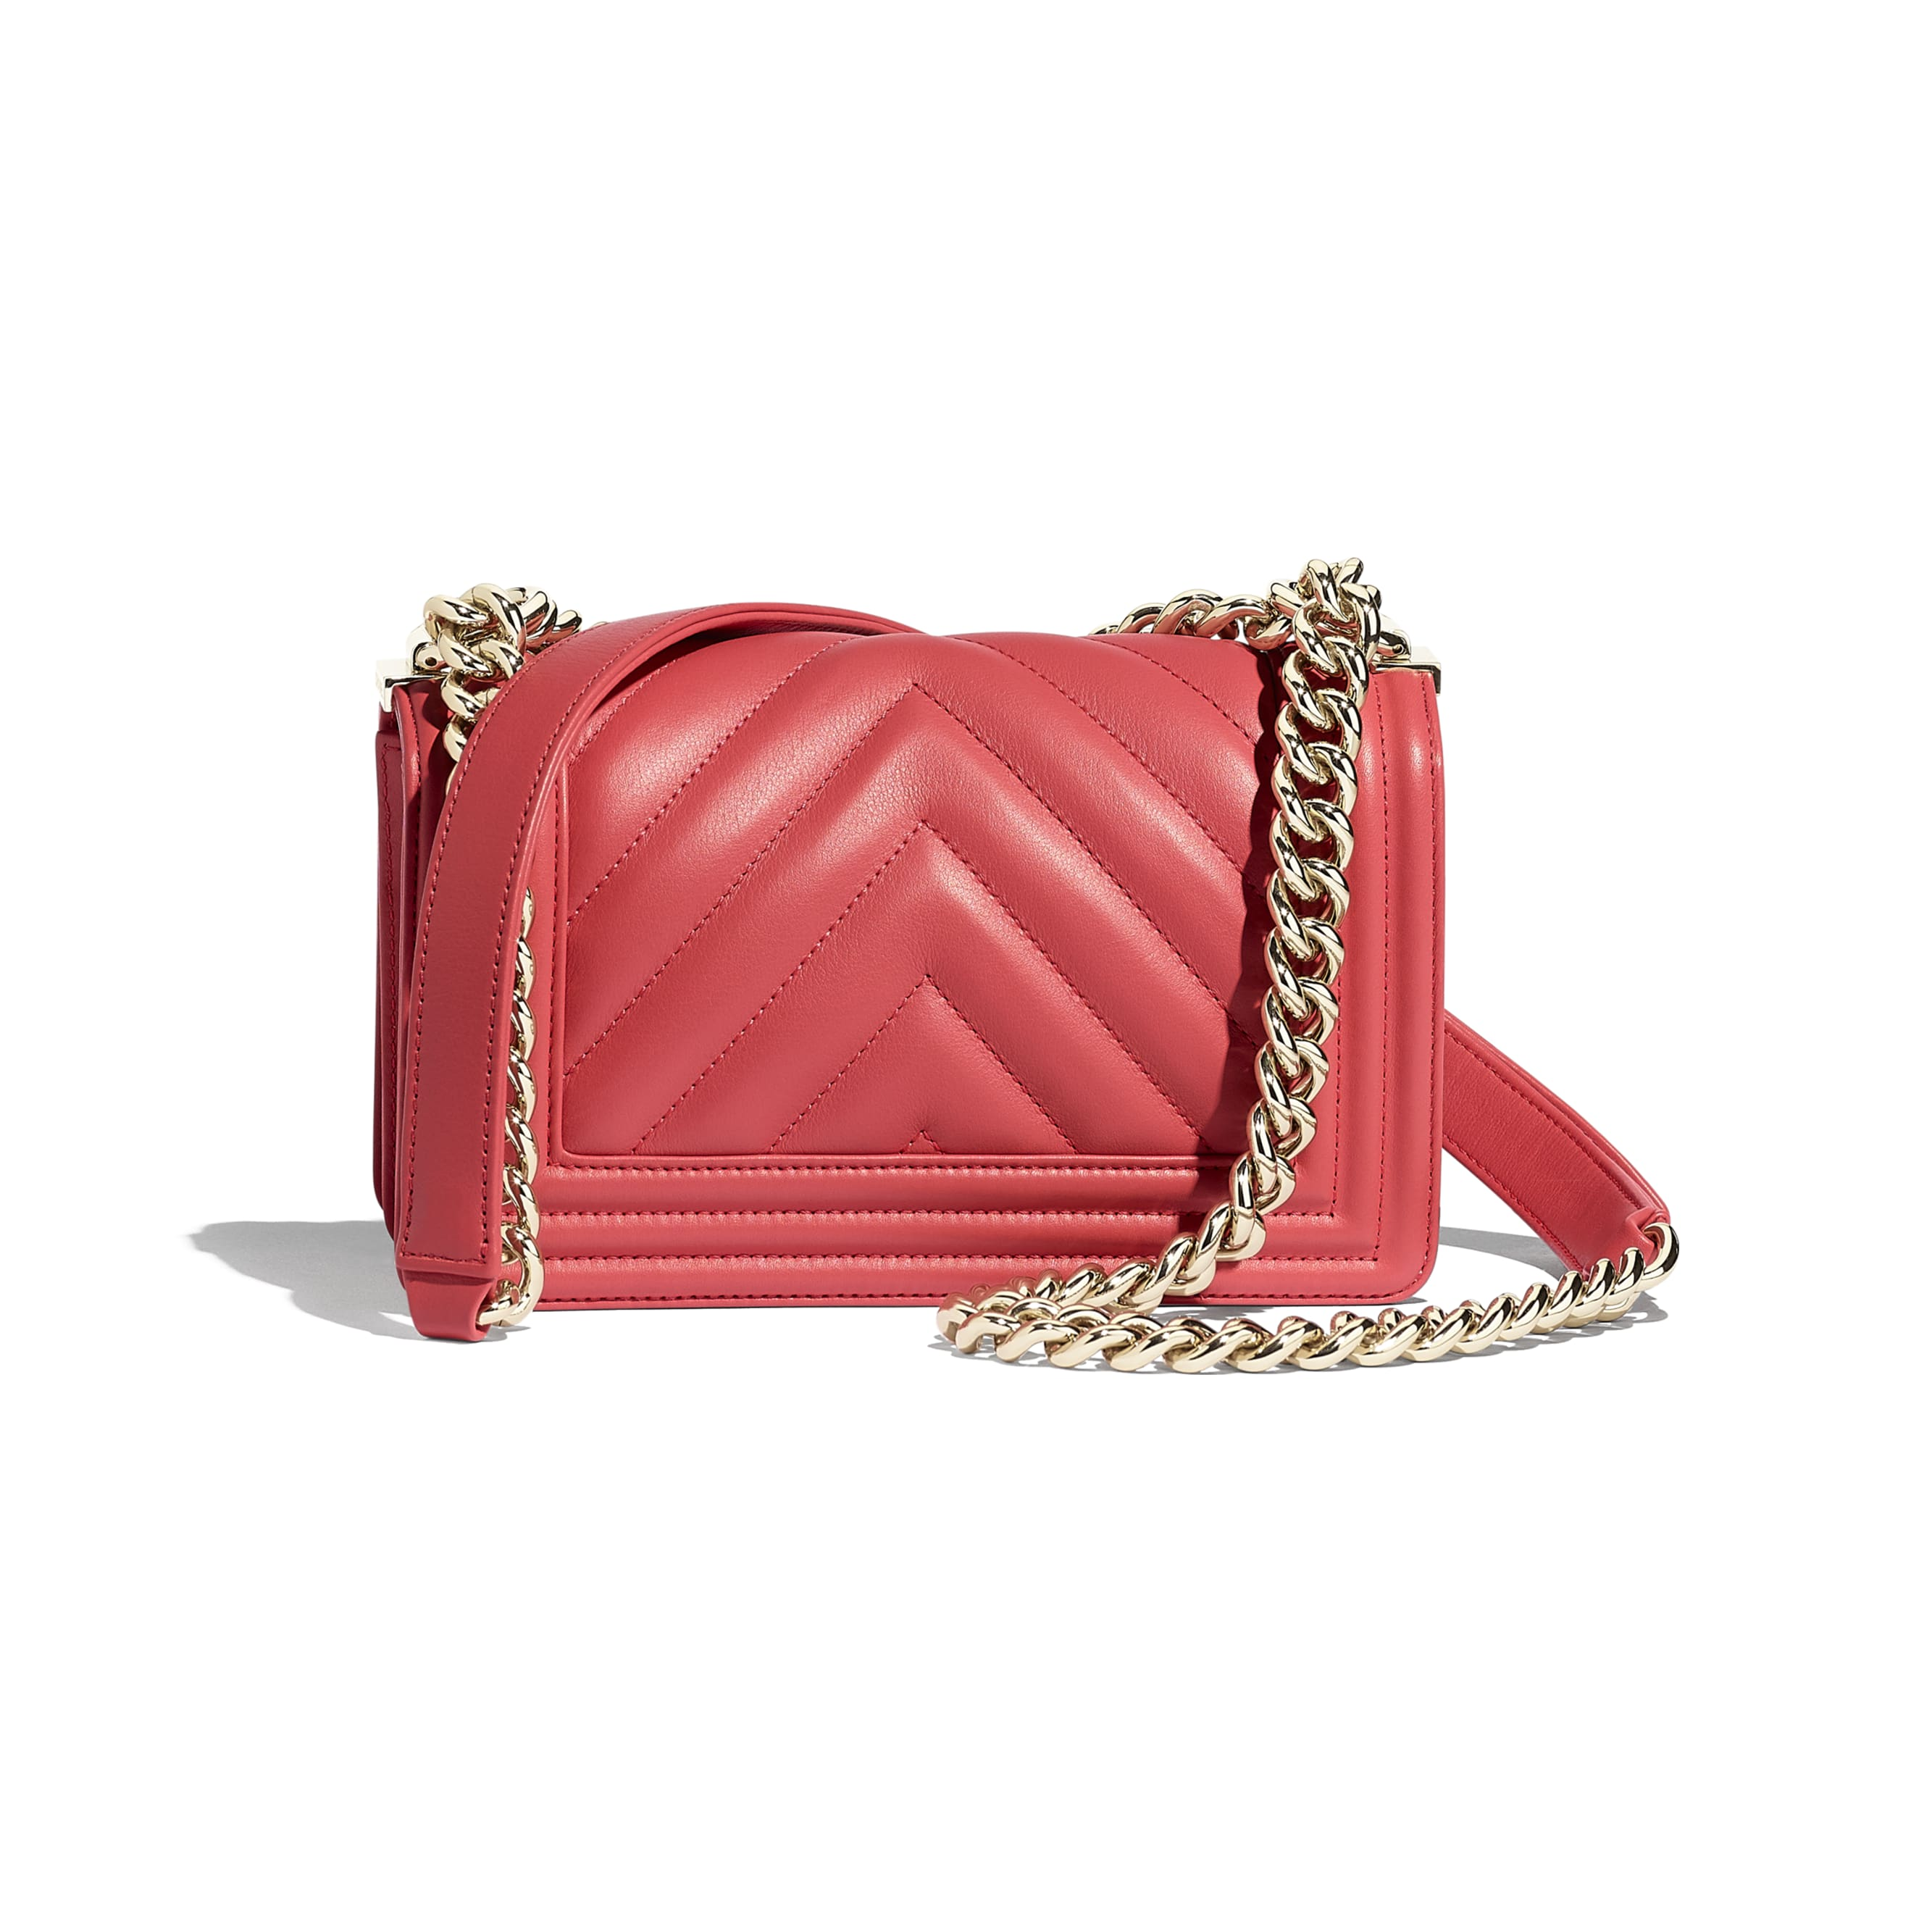 Small BOY CHANEL Handbag - Pink - Calfskin & Gold-Tone Metal - CHANEL - Alternative view - see standard sized version